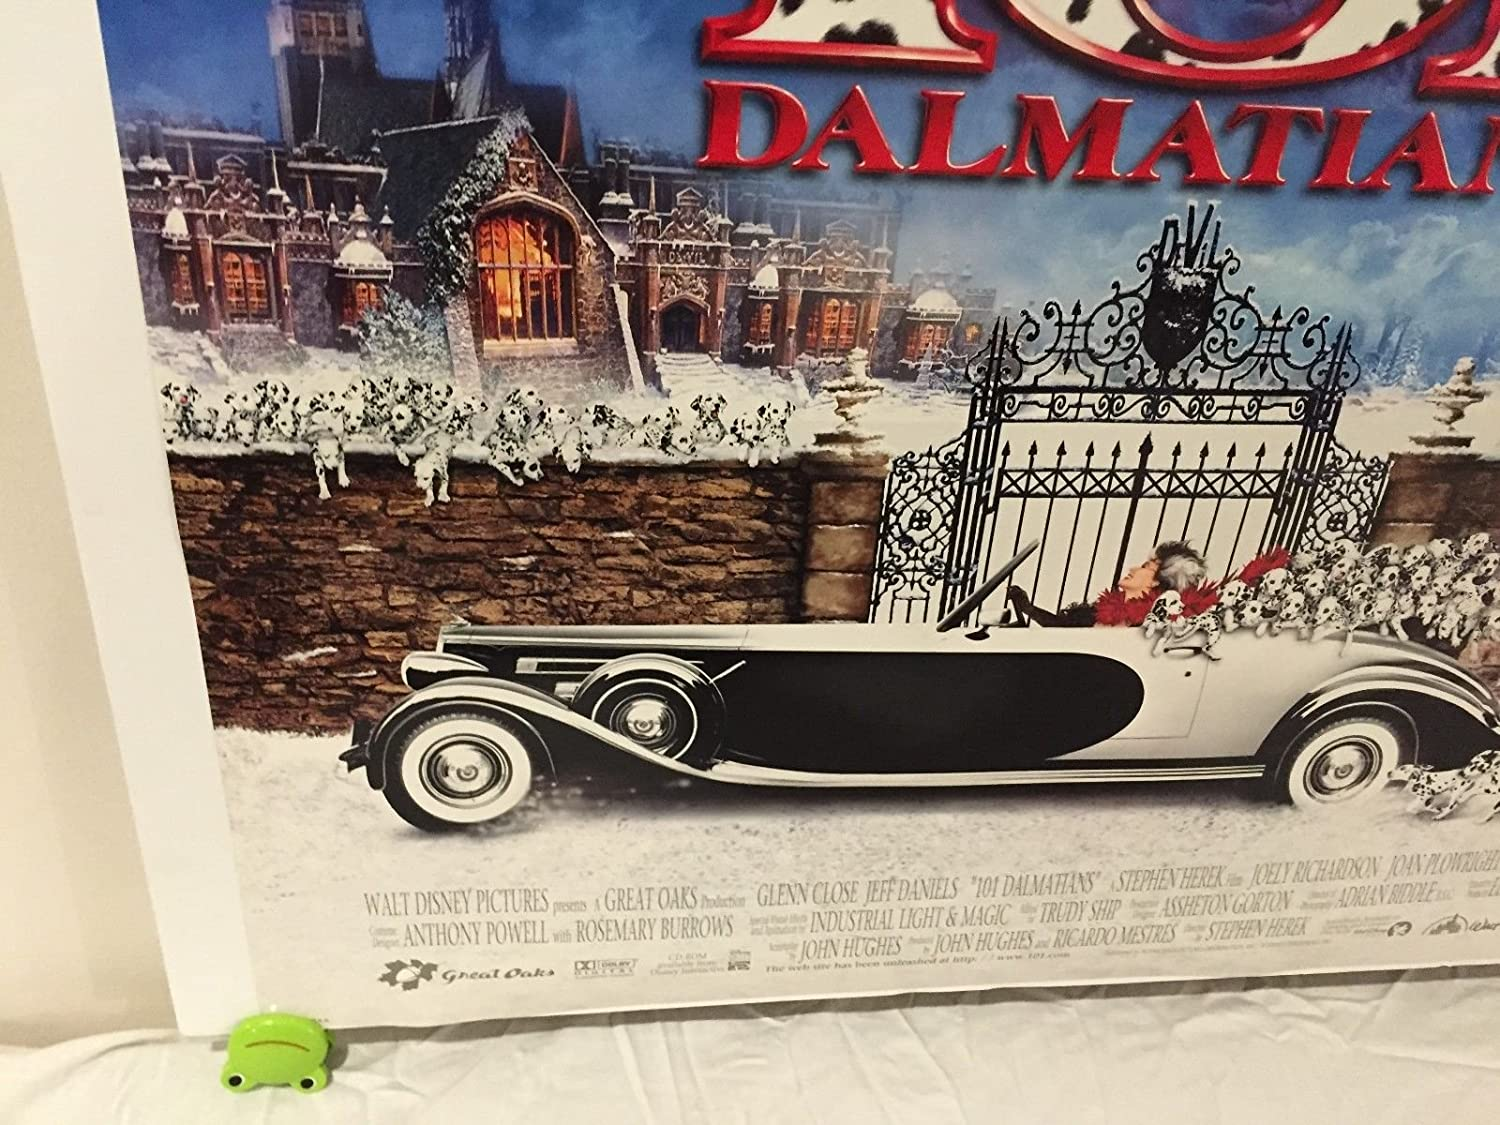 Walt disney 101 Dalmatians Movie Poster 27x40 One Sheet Rare 1996 Double Sided